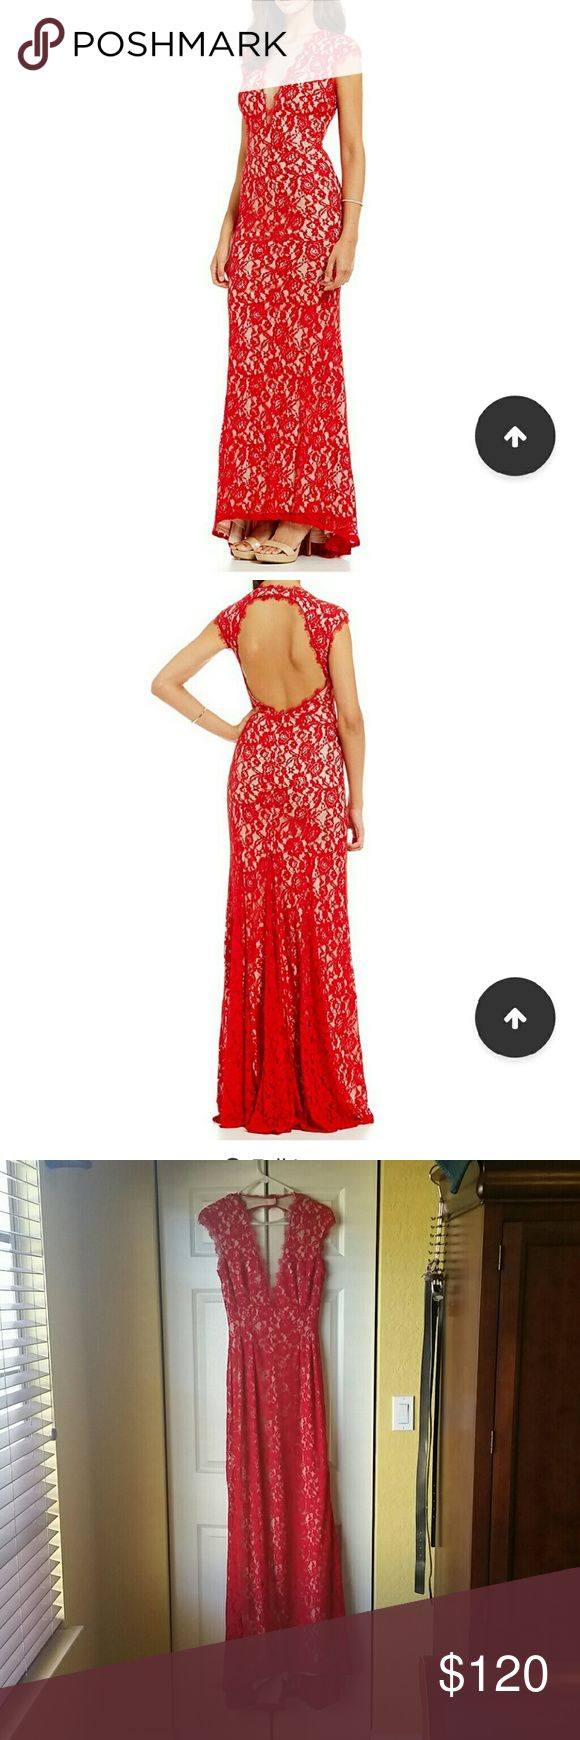 Red Aidan Mattox Lace dress Only worn twice and still in good condition :-) Aidan Mattox Dresses Backless